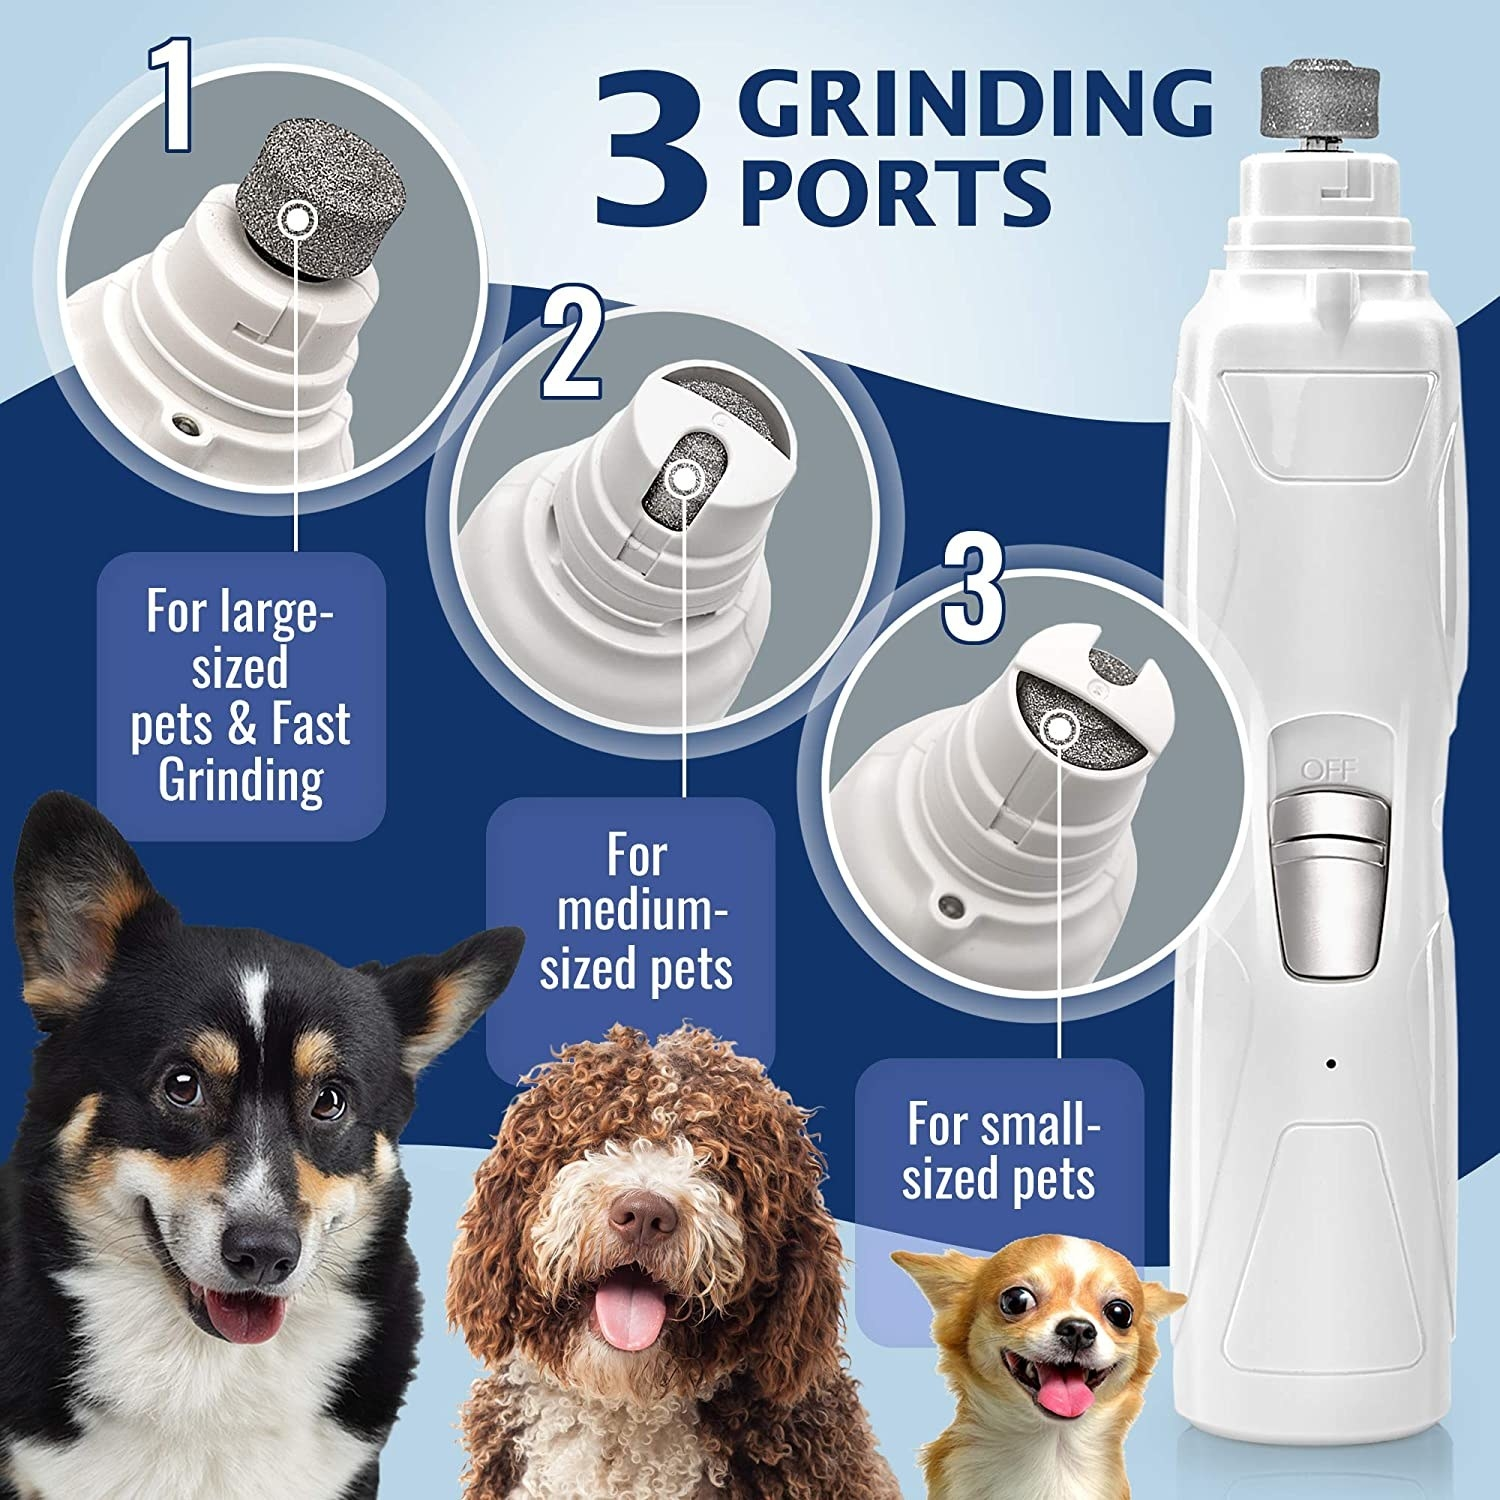 White wand-shaped nail grinder showing three different settings for different sized dogs and nails